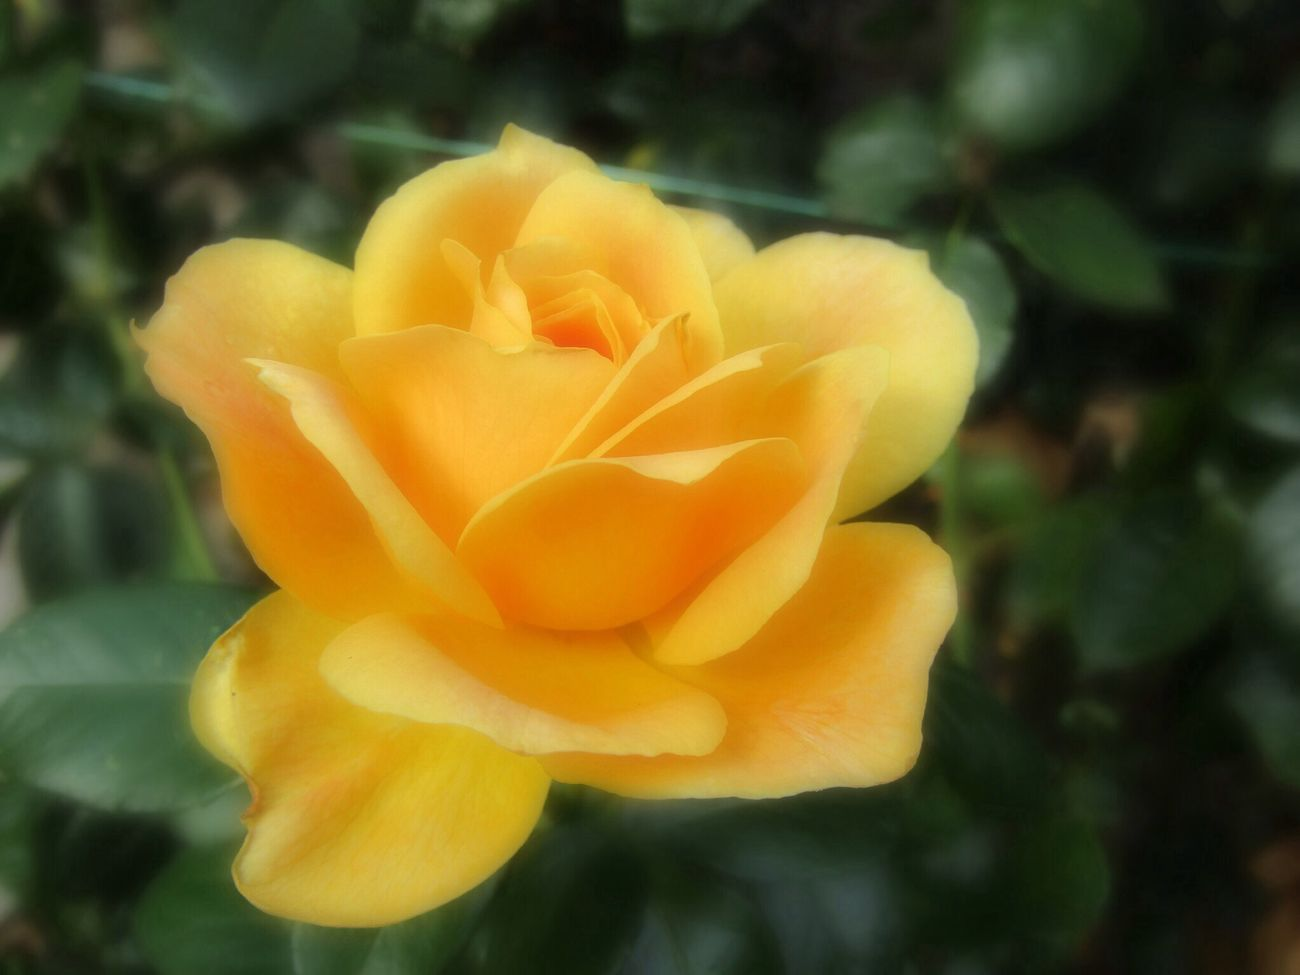 Yellow Rose In Soft Focus Petal Freshness Fragility Flower Flower Head Close-up Growth Beauty In Nature Single Flower Nature Springtime Focus On Foreground In Bloom Plant Vibrant Color Single Rose Softness Blossom